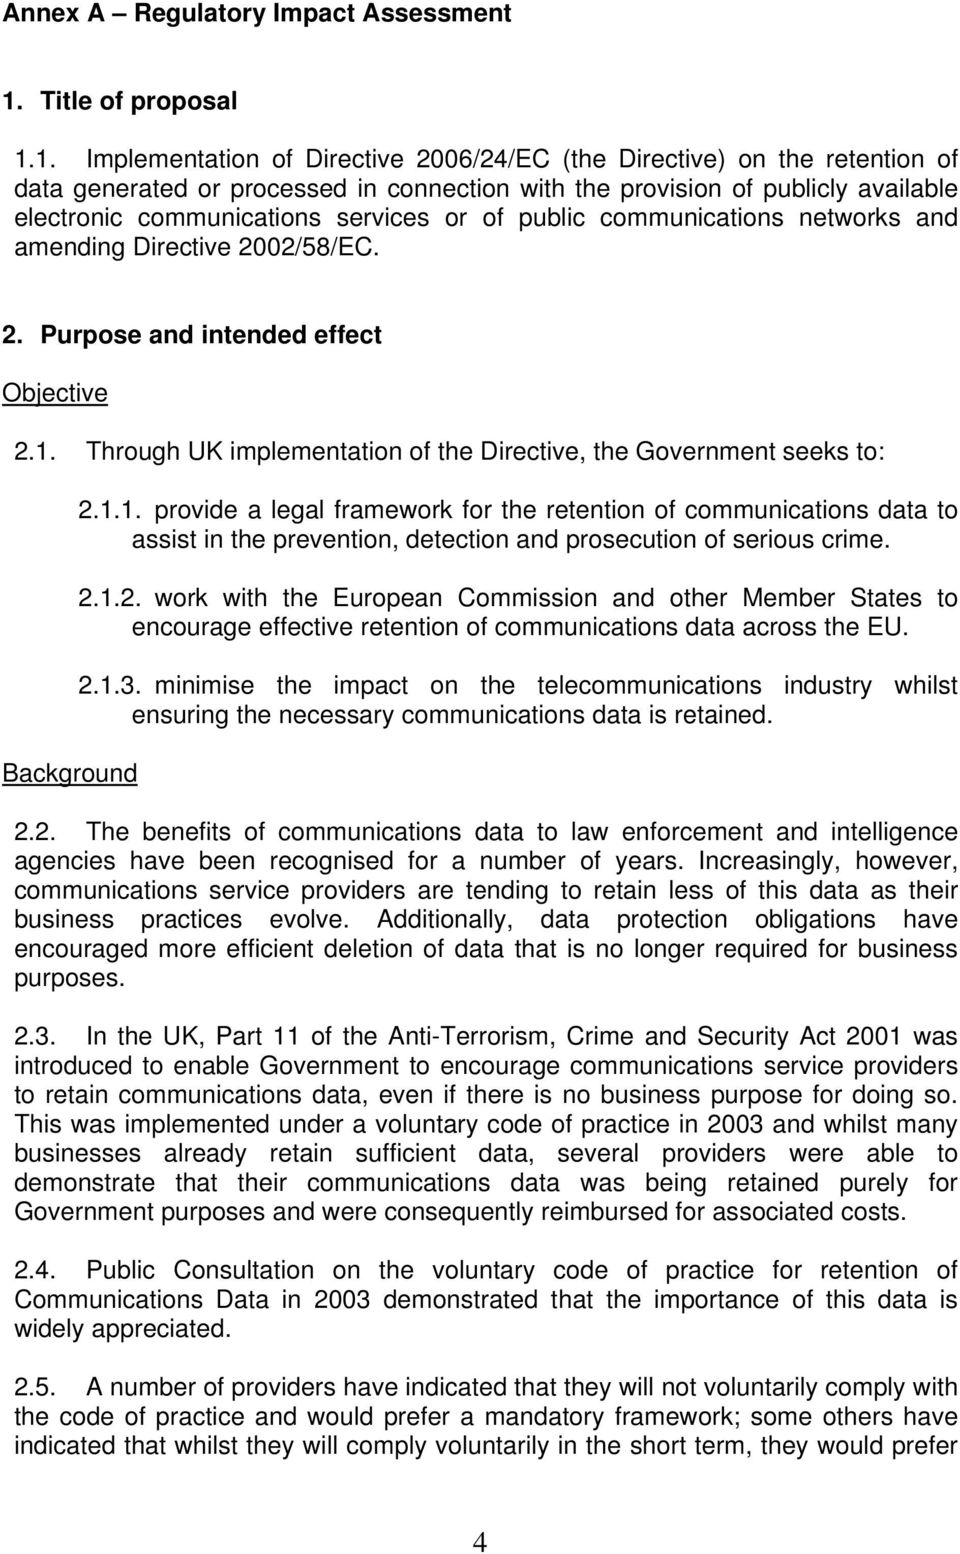 1. Implementation of Directive 2006/24/EC (the Directive) on the retention of data generated or processed in connection with the provision of publicly available electronic communications services or